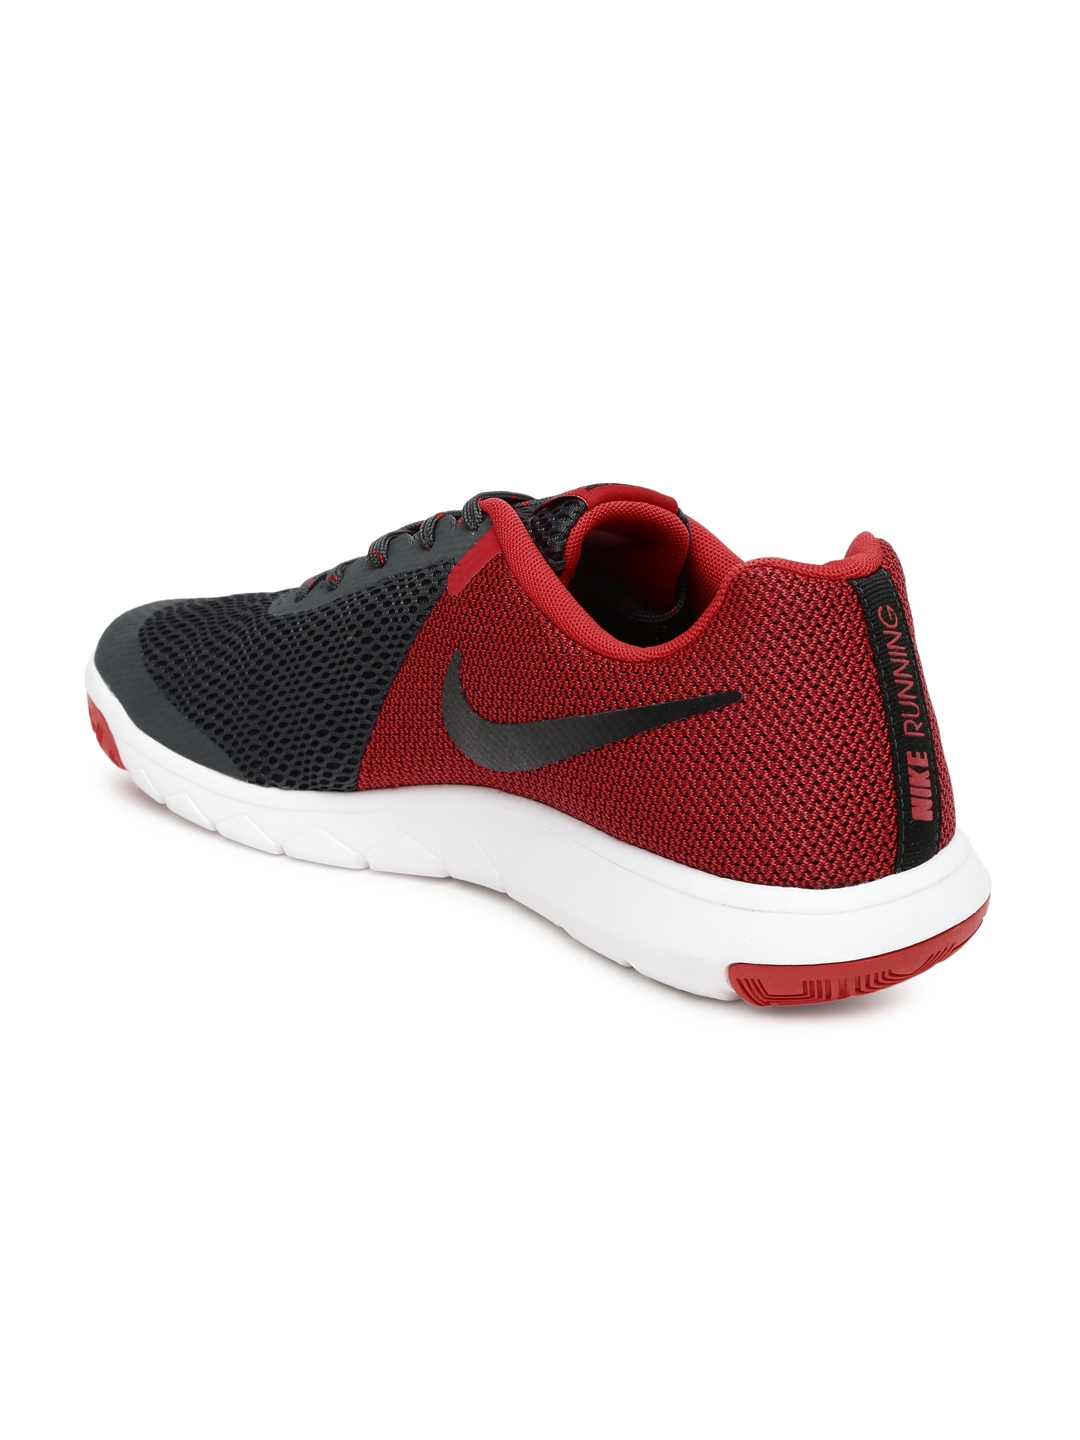 a71d9be64f03 Buy Nike Men Charcoal Grey   Red Flex Experience RN 5 Running Shoes - Sports  Shoes for Men 1547947